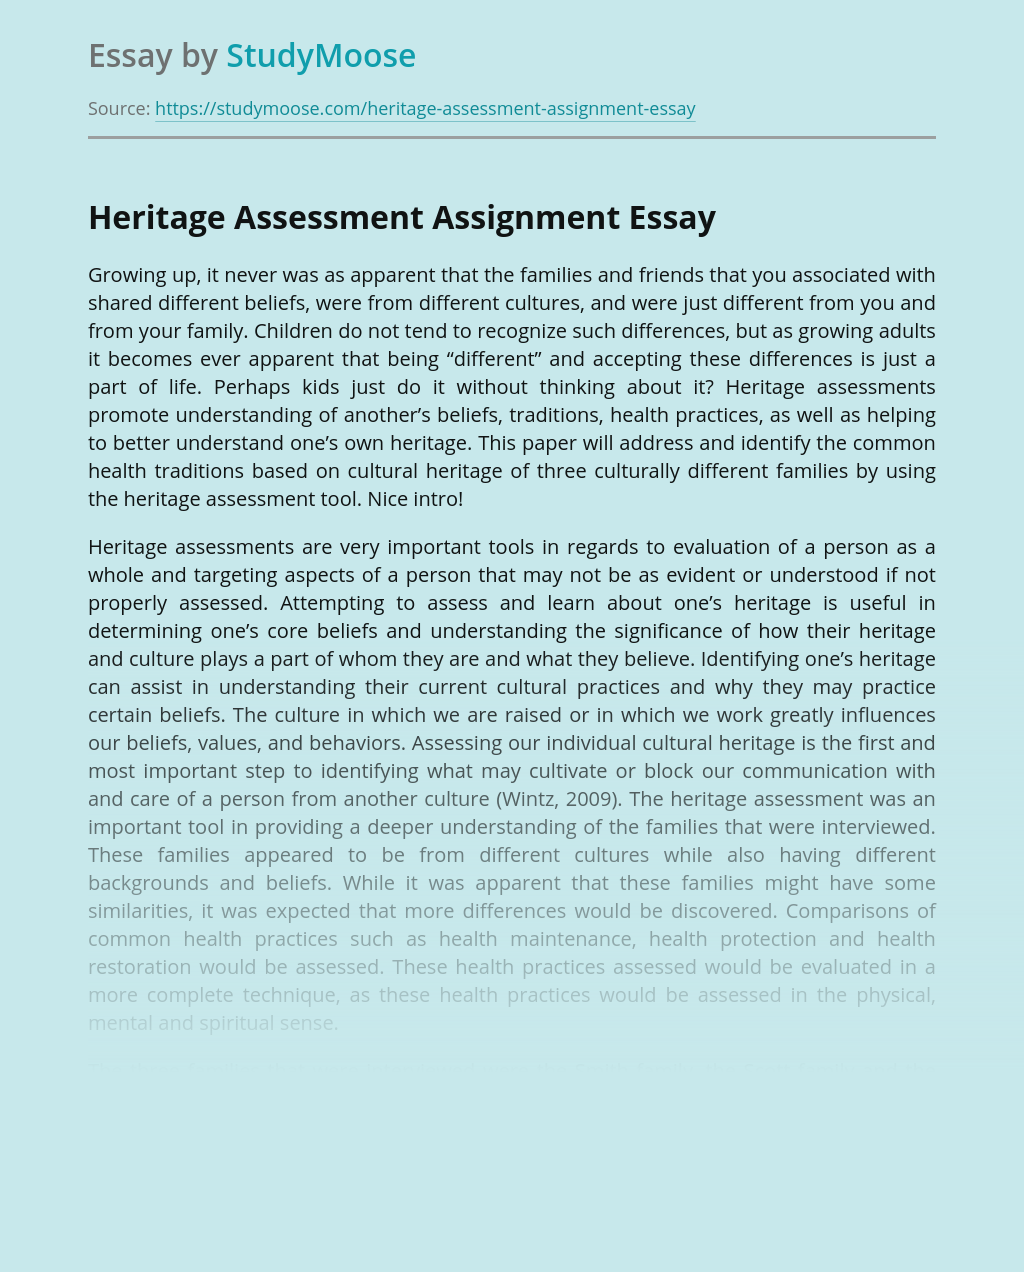 Heritage Assessment Assignment